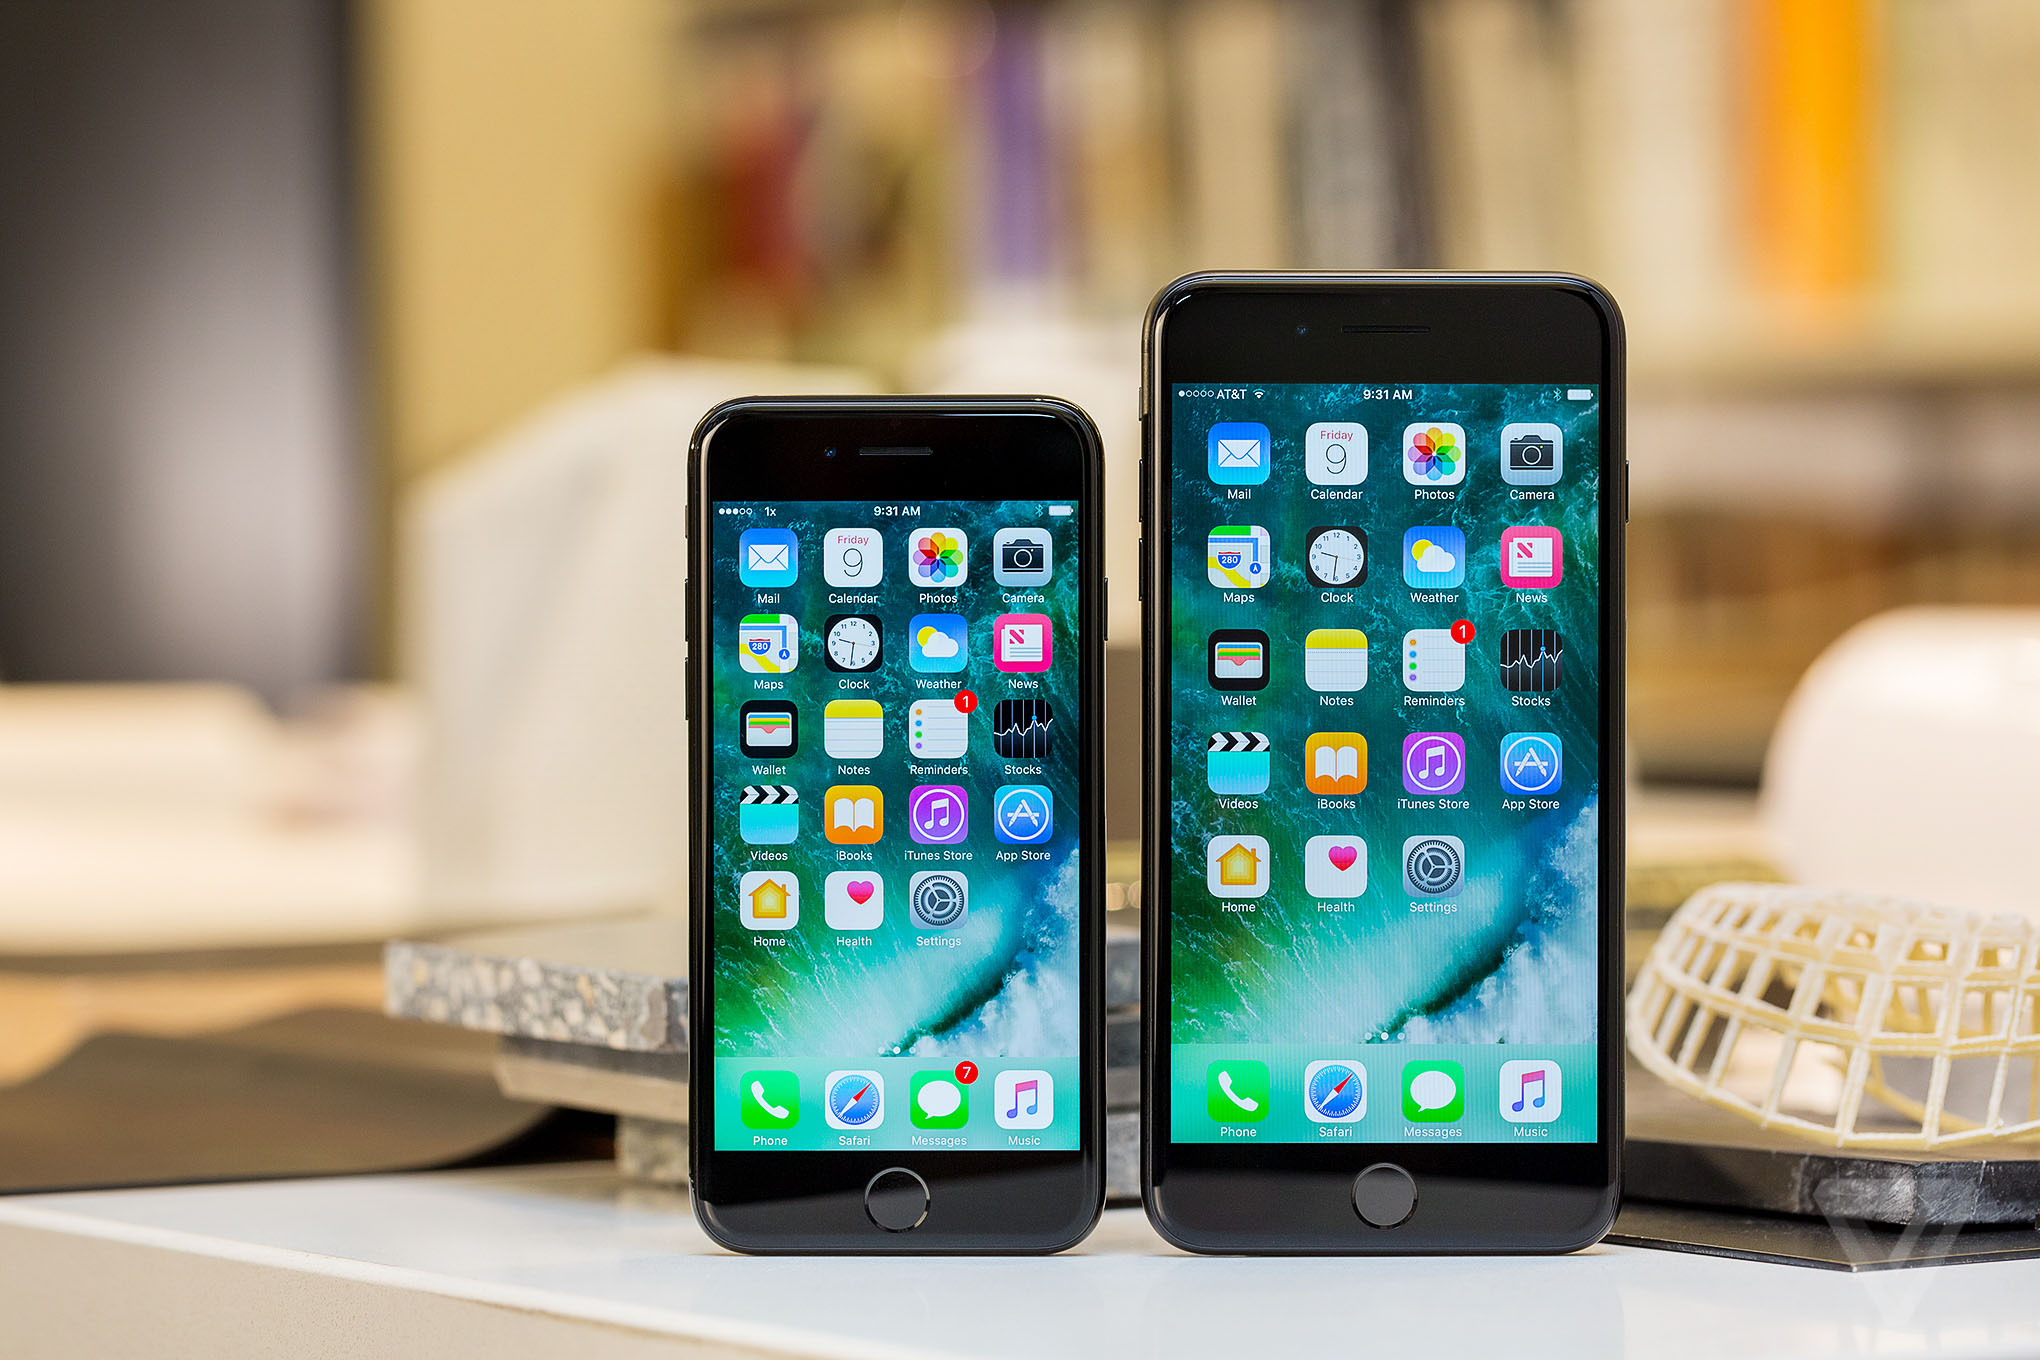 Apple confirms iOS 11.3 will let you turn off controversial throttling of older iPhones